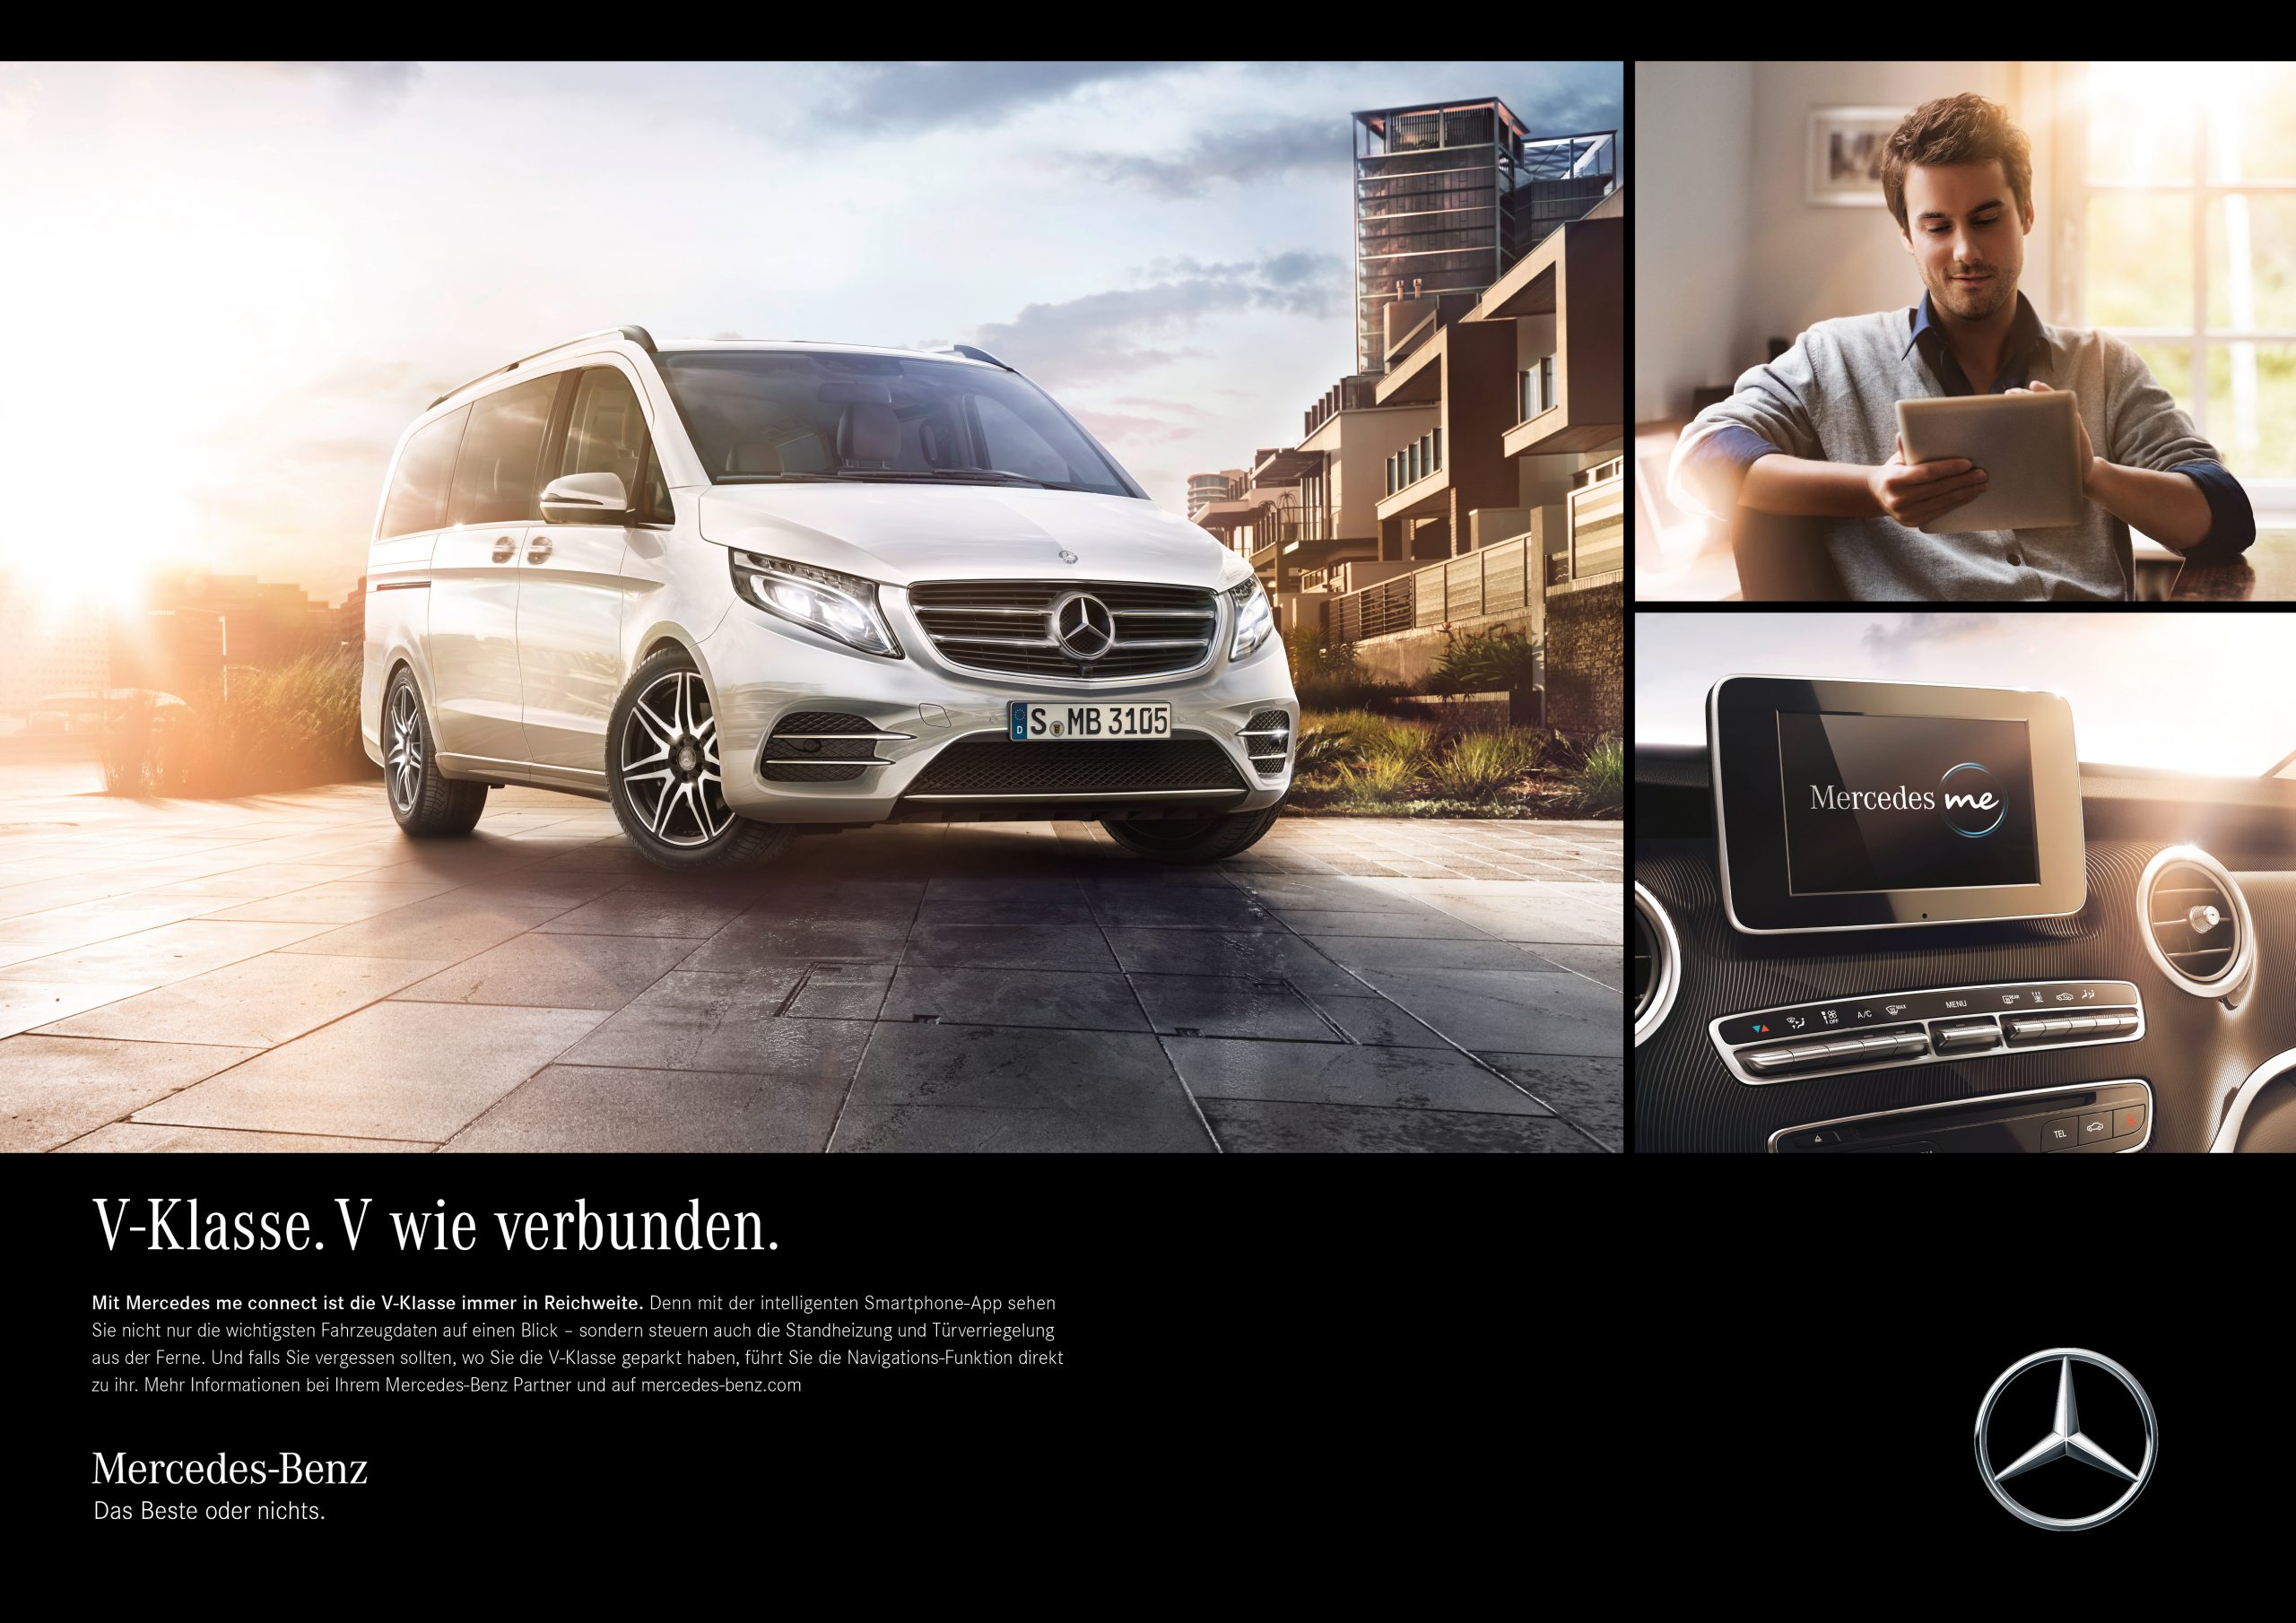 160523_MB_V-Class_Connectivity_AD 2-1_ger_Multipic_2